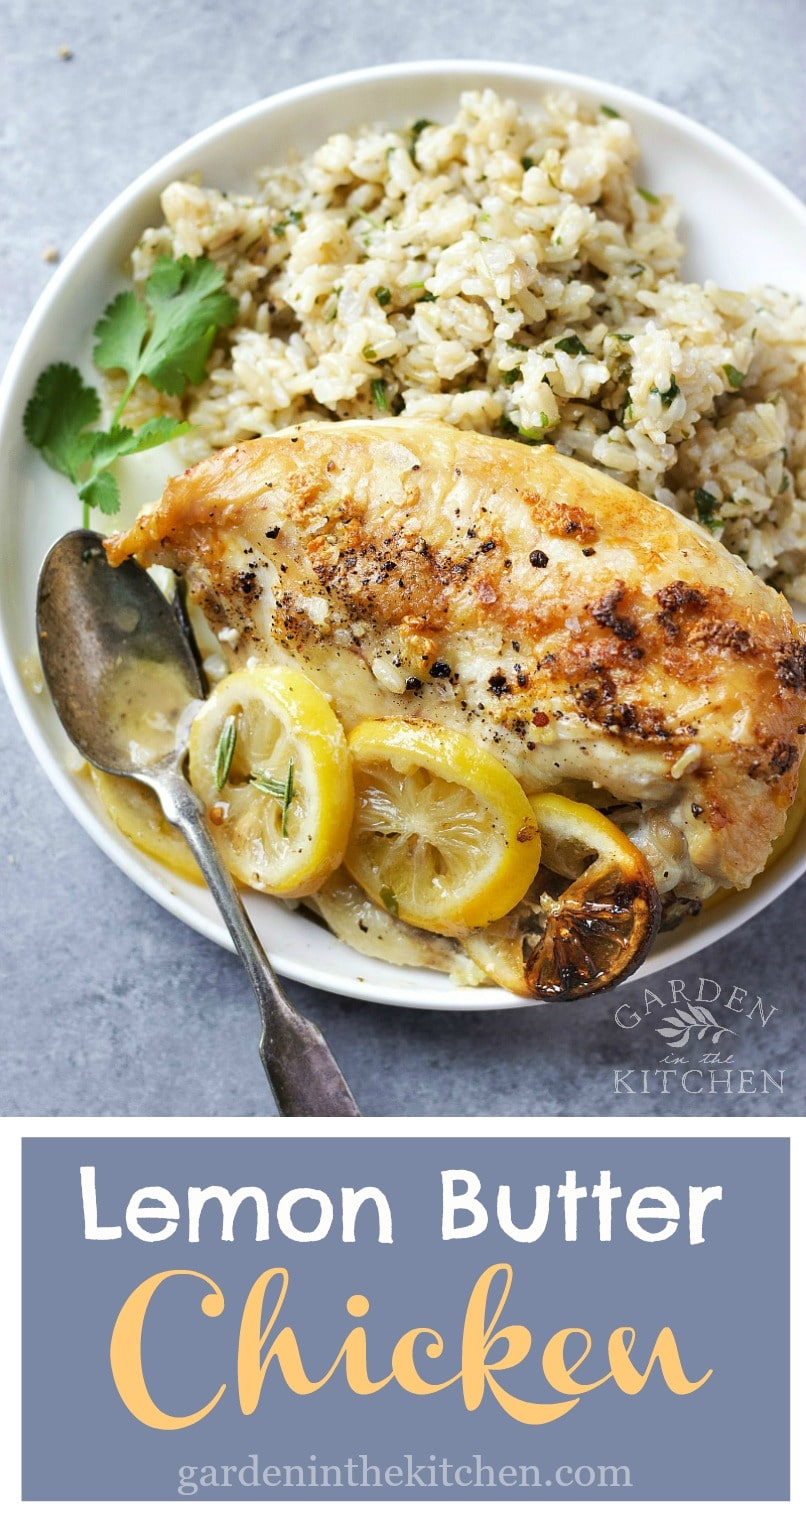 This flavorful chicken is all about that golden buttery skin crispy around the edge, super moist on the inside with a hint of lemon flavor. The sea salt flakes will give every bite a crushing edge intensified by the woody tones of black pepper! #lemonbutterchicken #butterchicken #chicken #chickenandrice